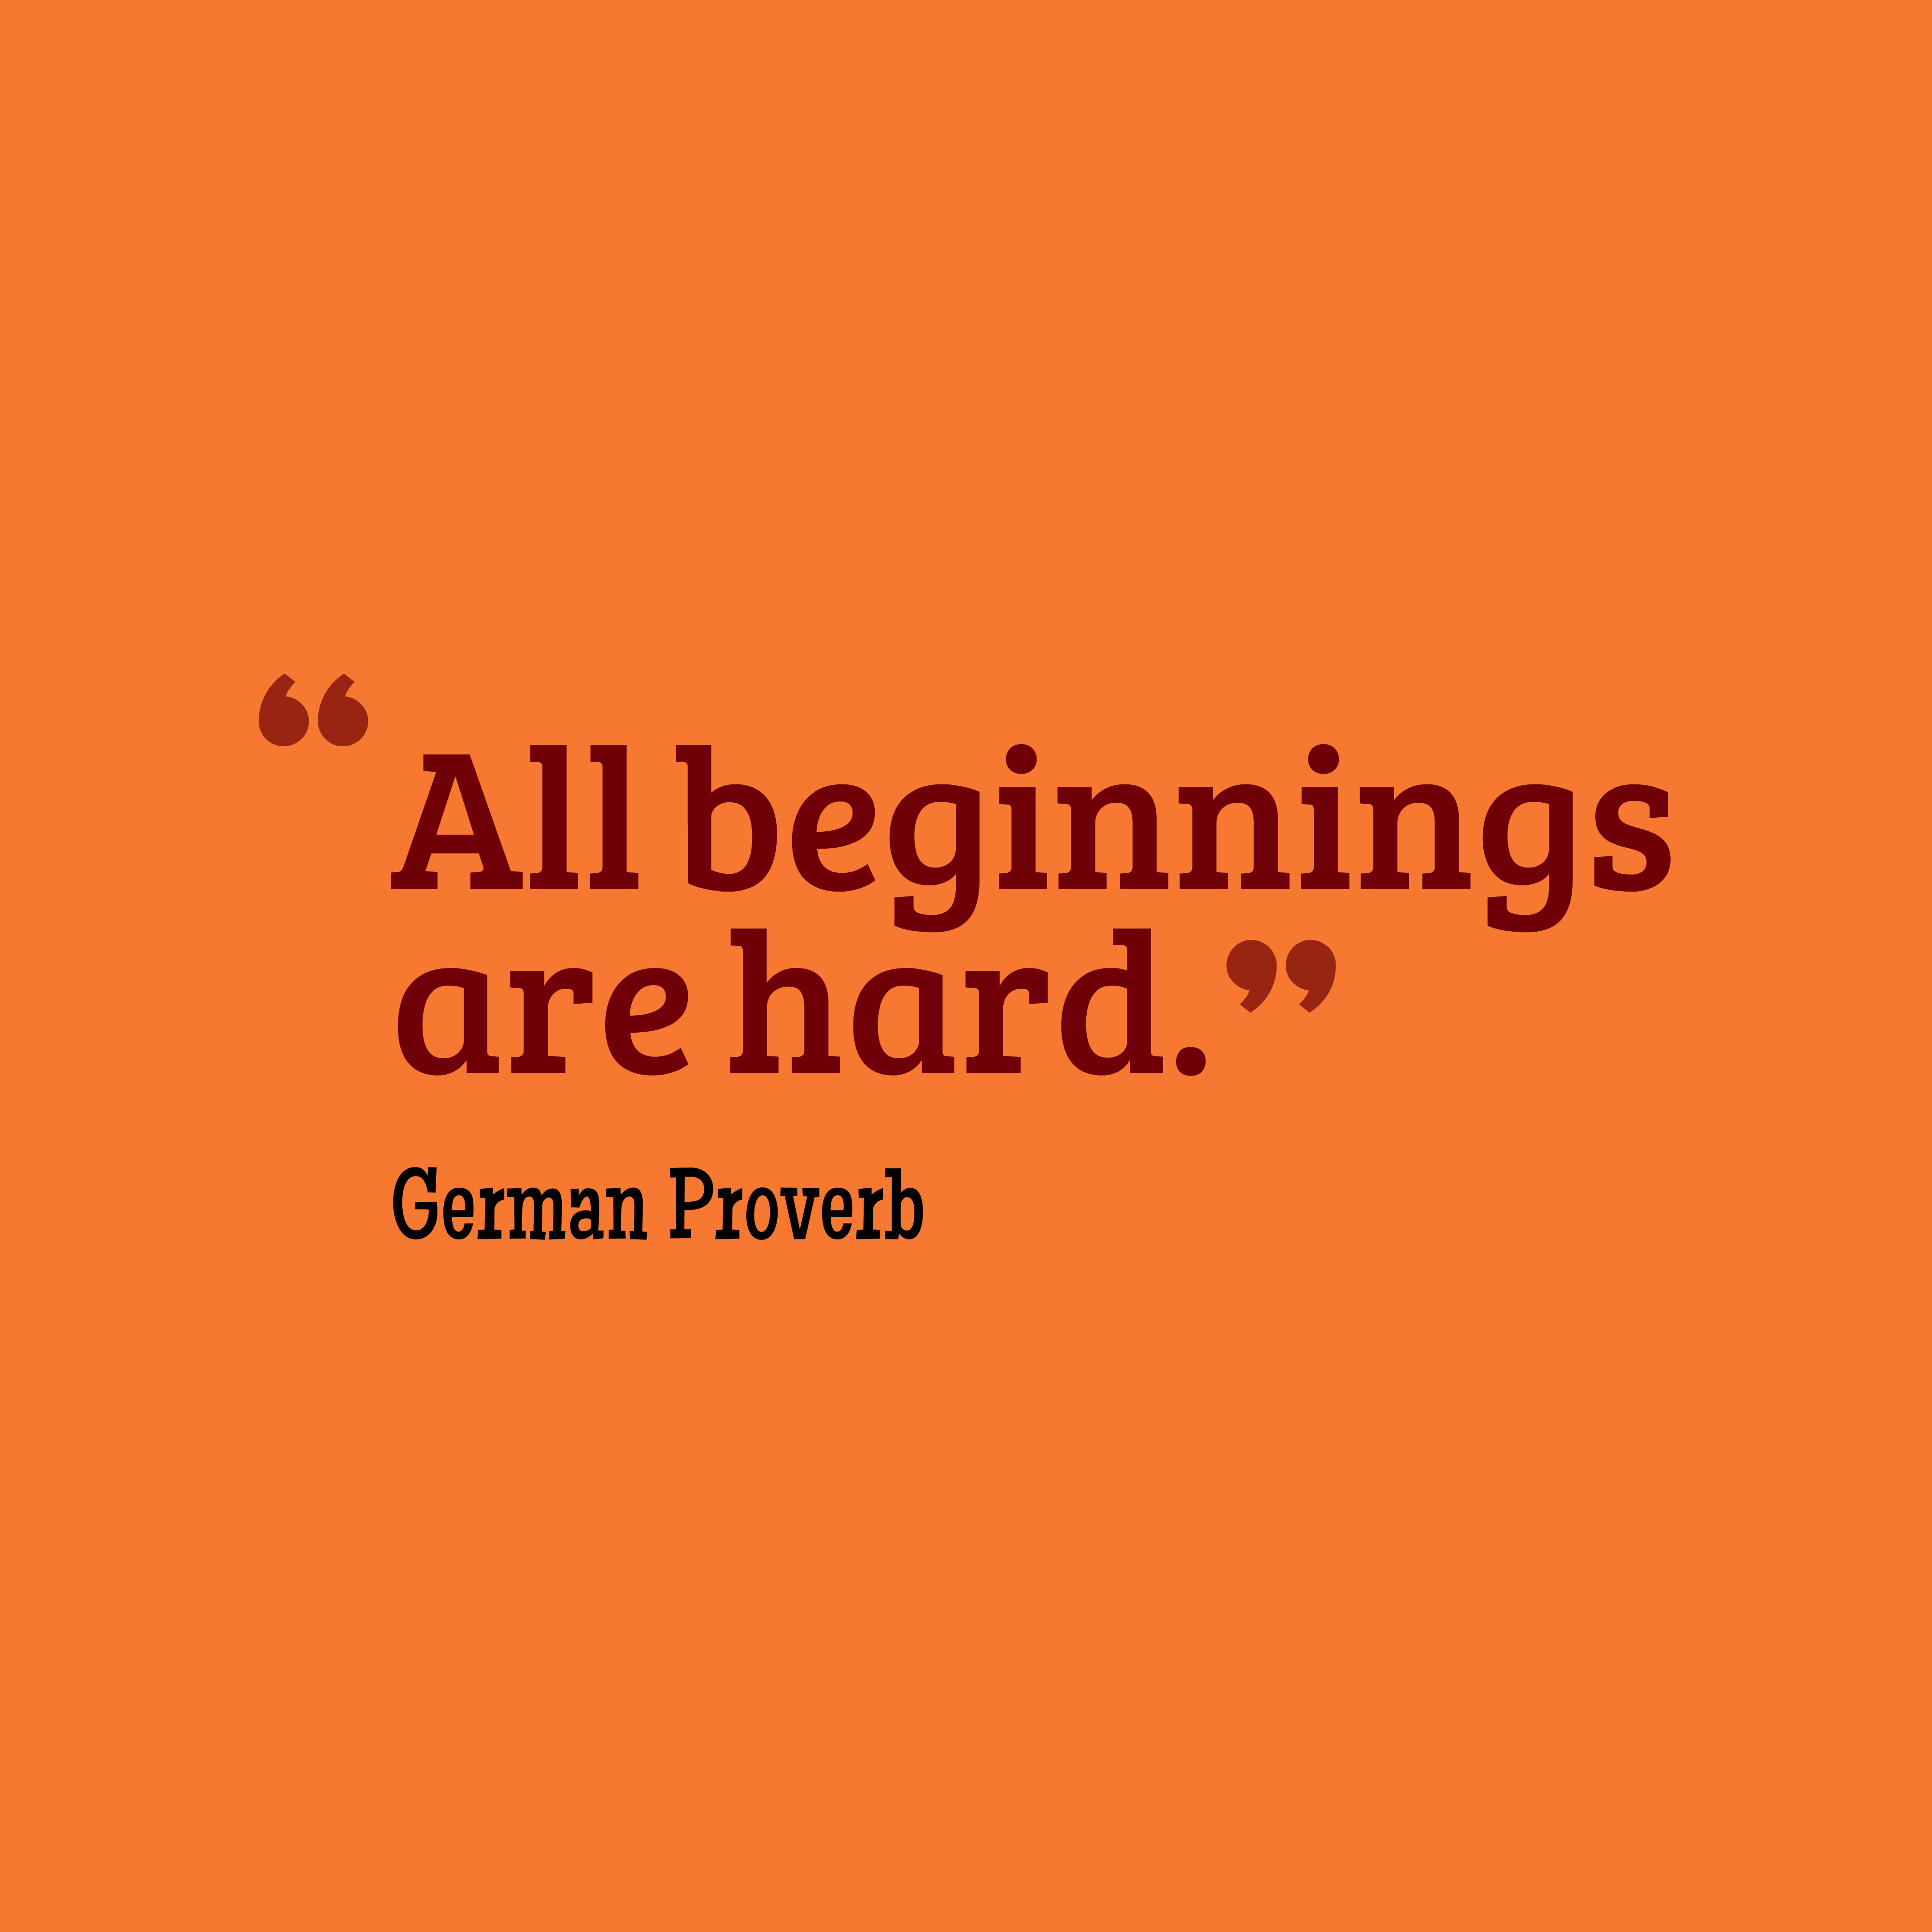 Quotes image of All beginnings are hard.